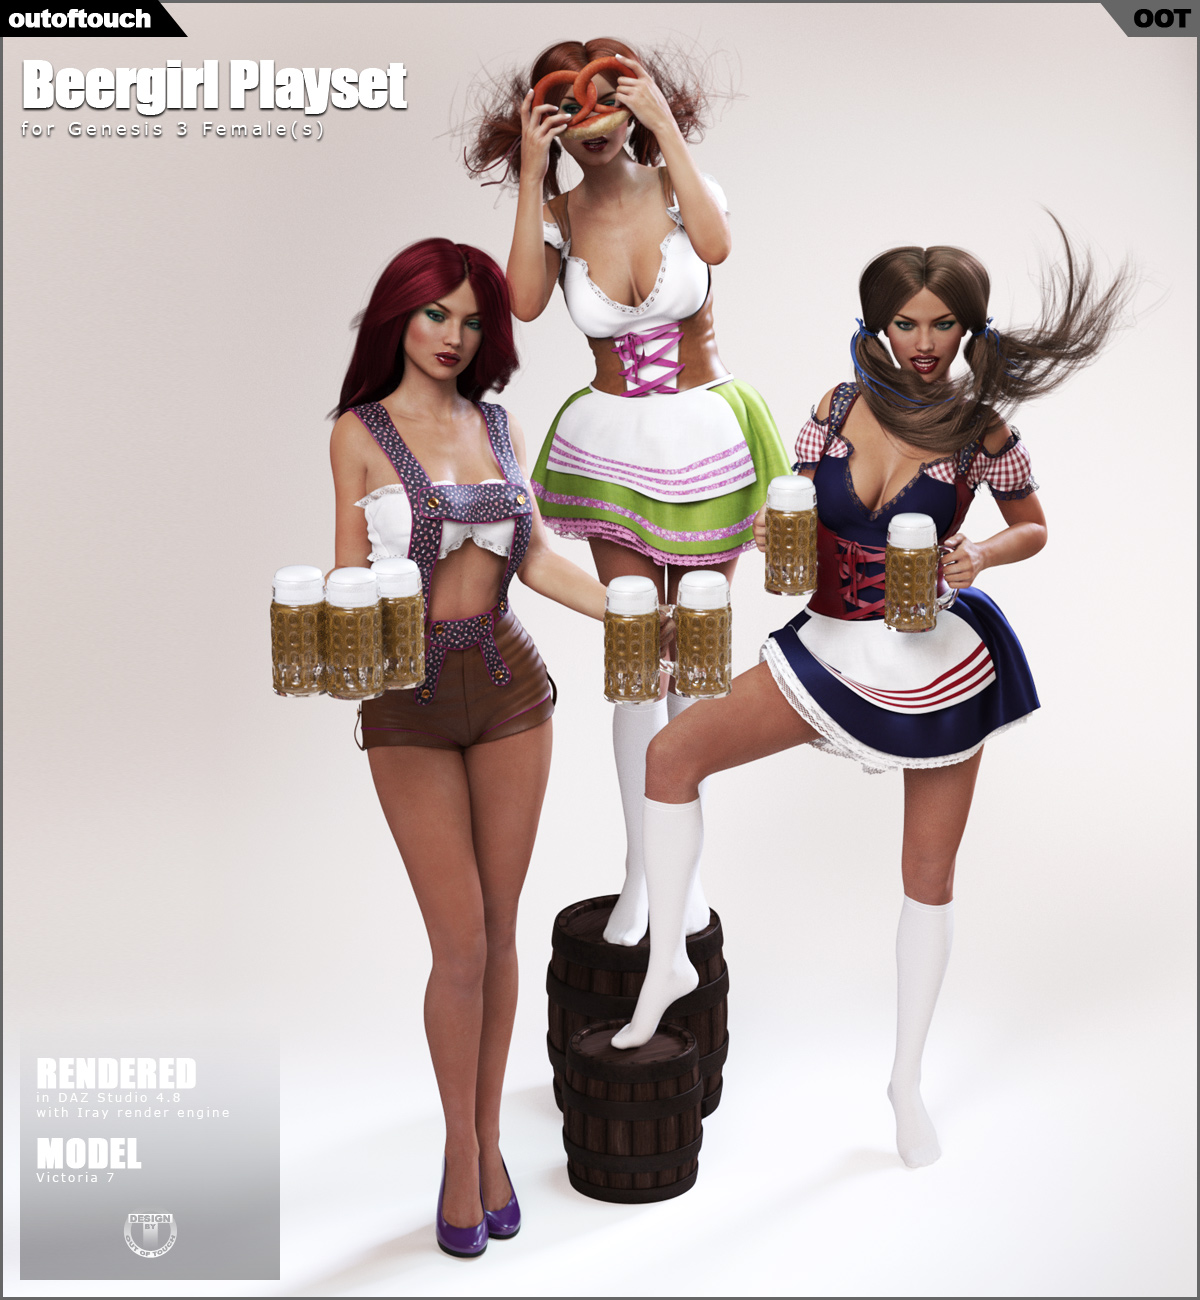 Beergirl Playset for Genesis 3 Female(s)